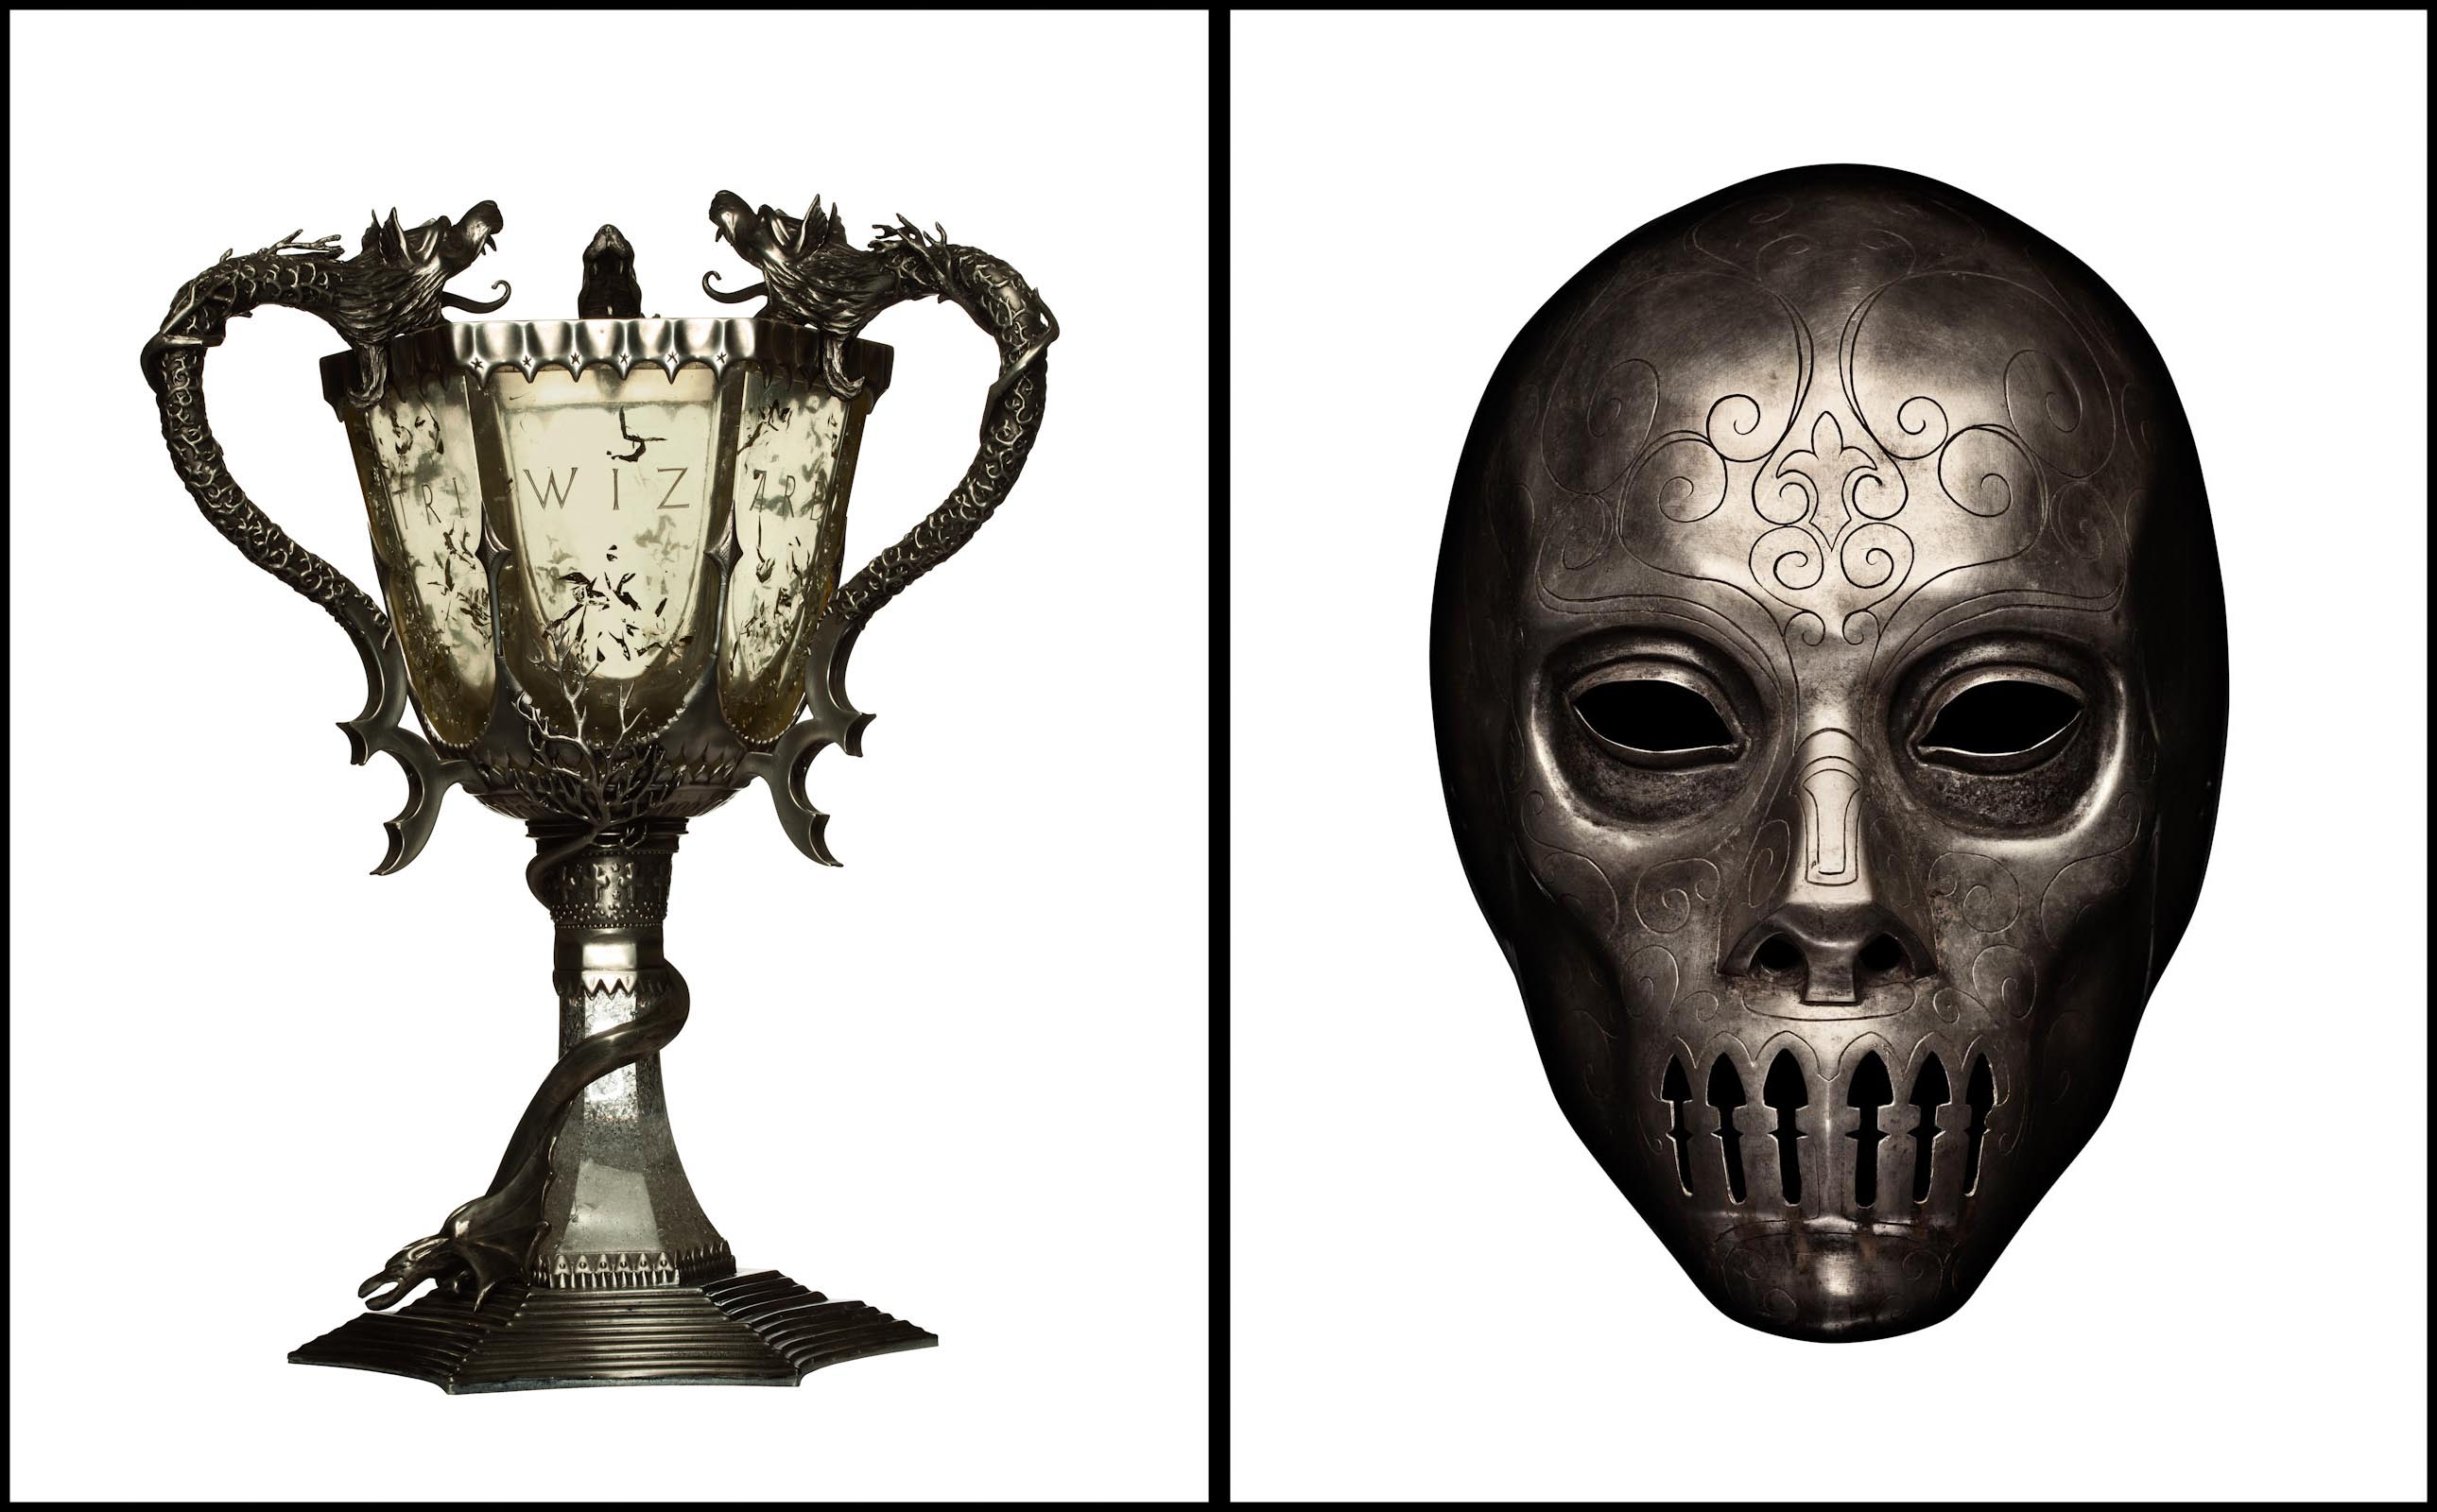 Harry Potter props, Tri-Wizard Cup and Death Eater Mask - Burbank, CA - Entertainment Weekly